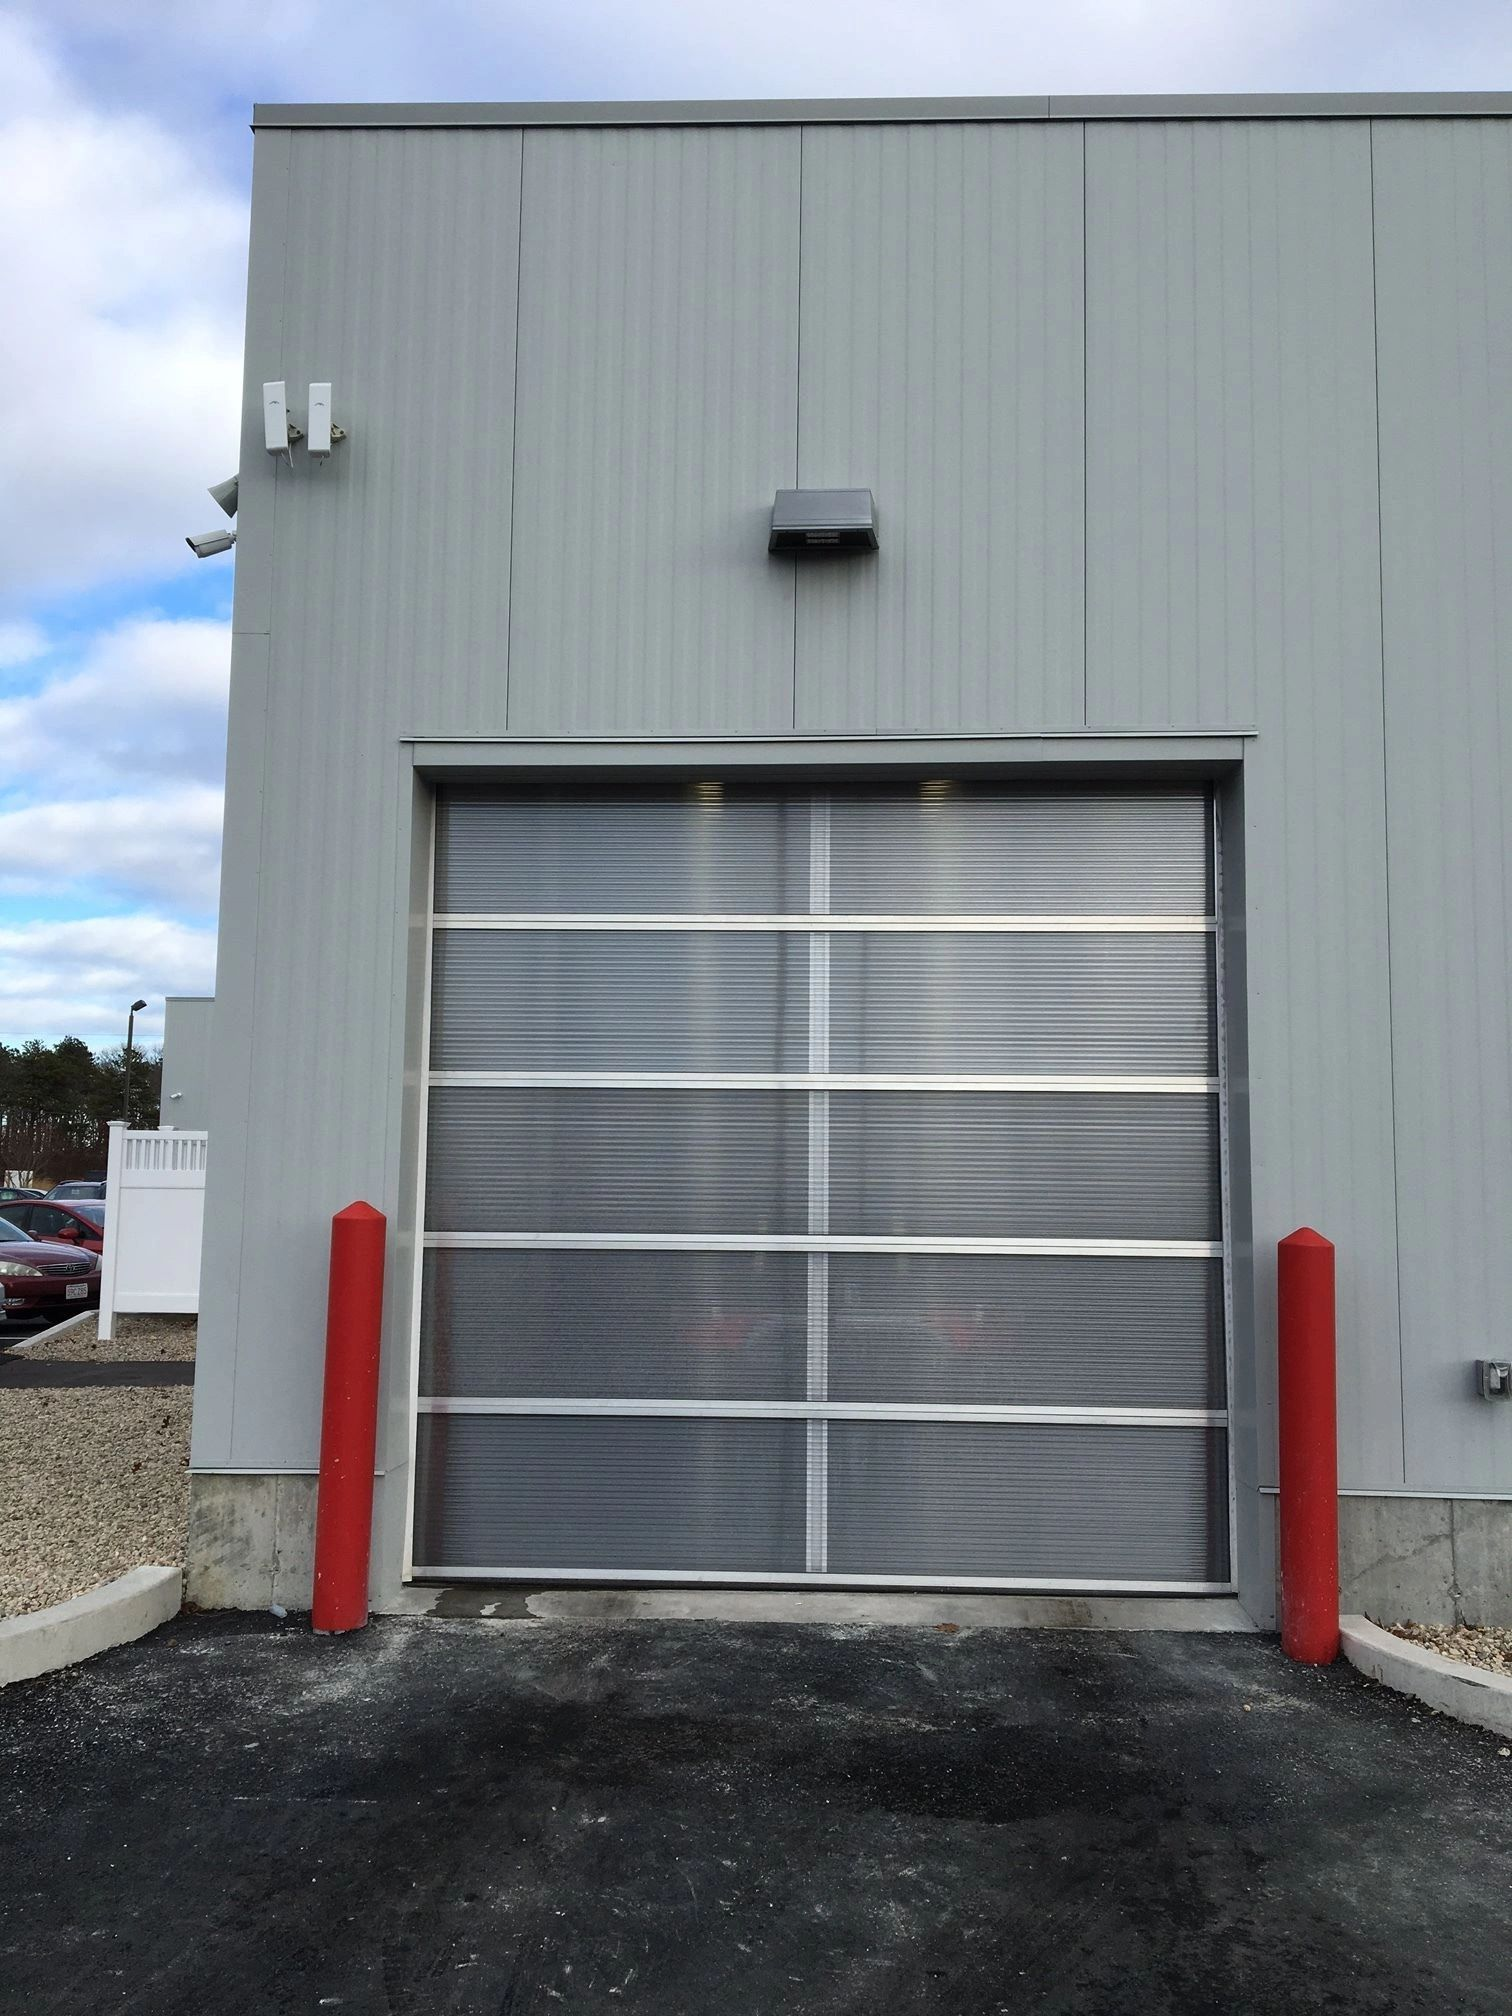 Next Generation Construction Rytec Door Garage Door Installation - Rytec Doors High Performance Products Wayne Dalton Overhead Doors | Next Generation ... & Next Generation Construction Rytec Door Garage Door Installation ...